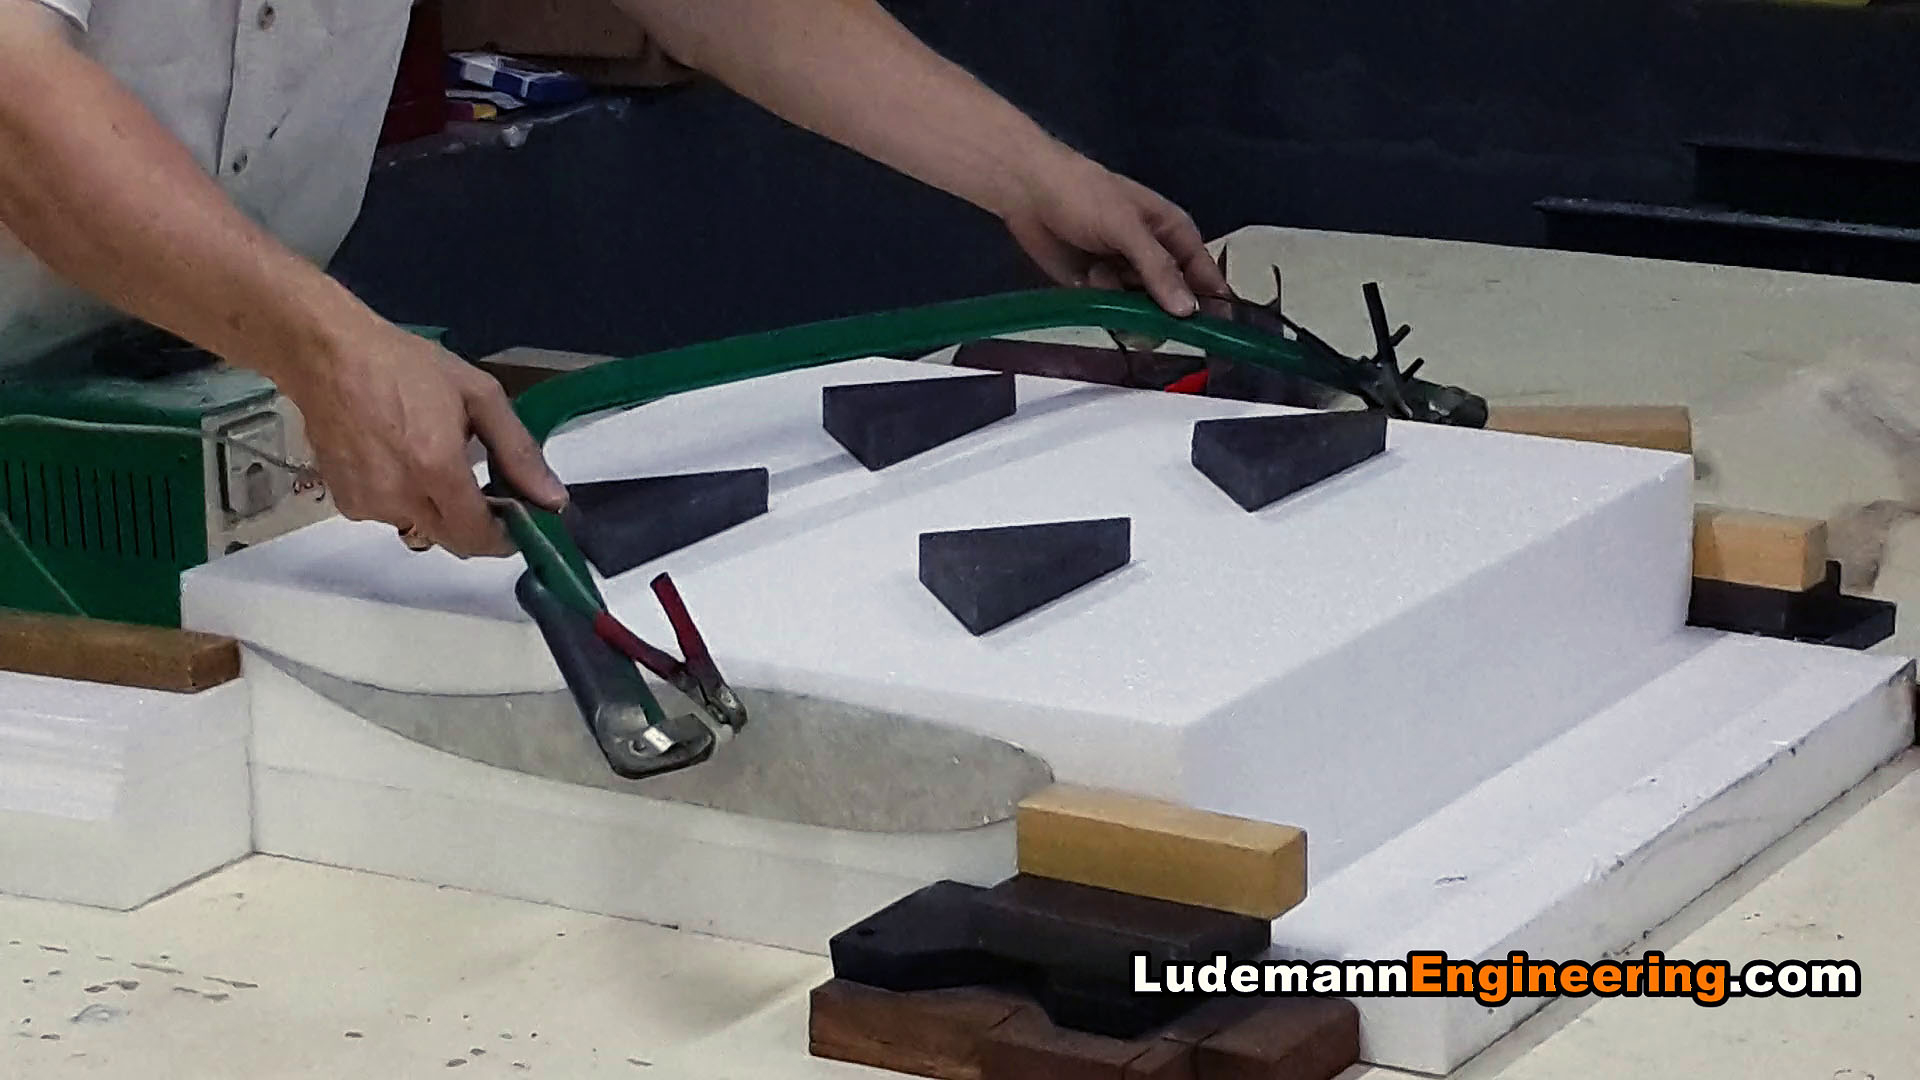 Race Car Ludemannengineering Hot Wire Foam Cutter Design Diagram Cutting Homemade